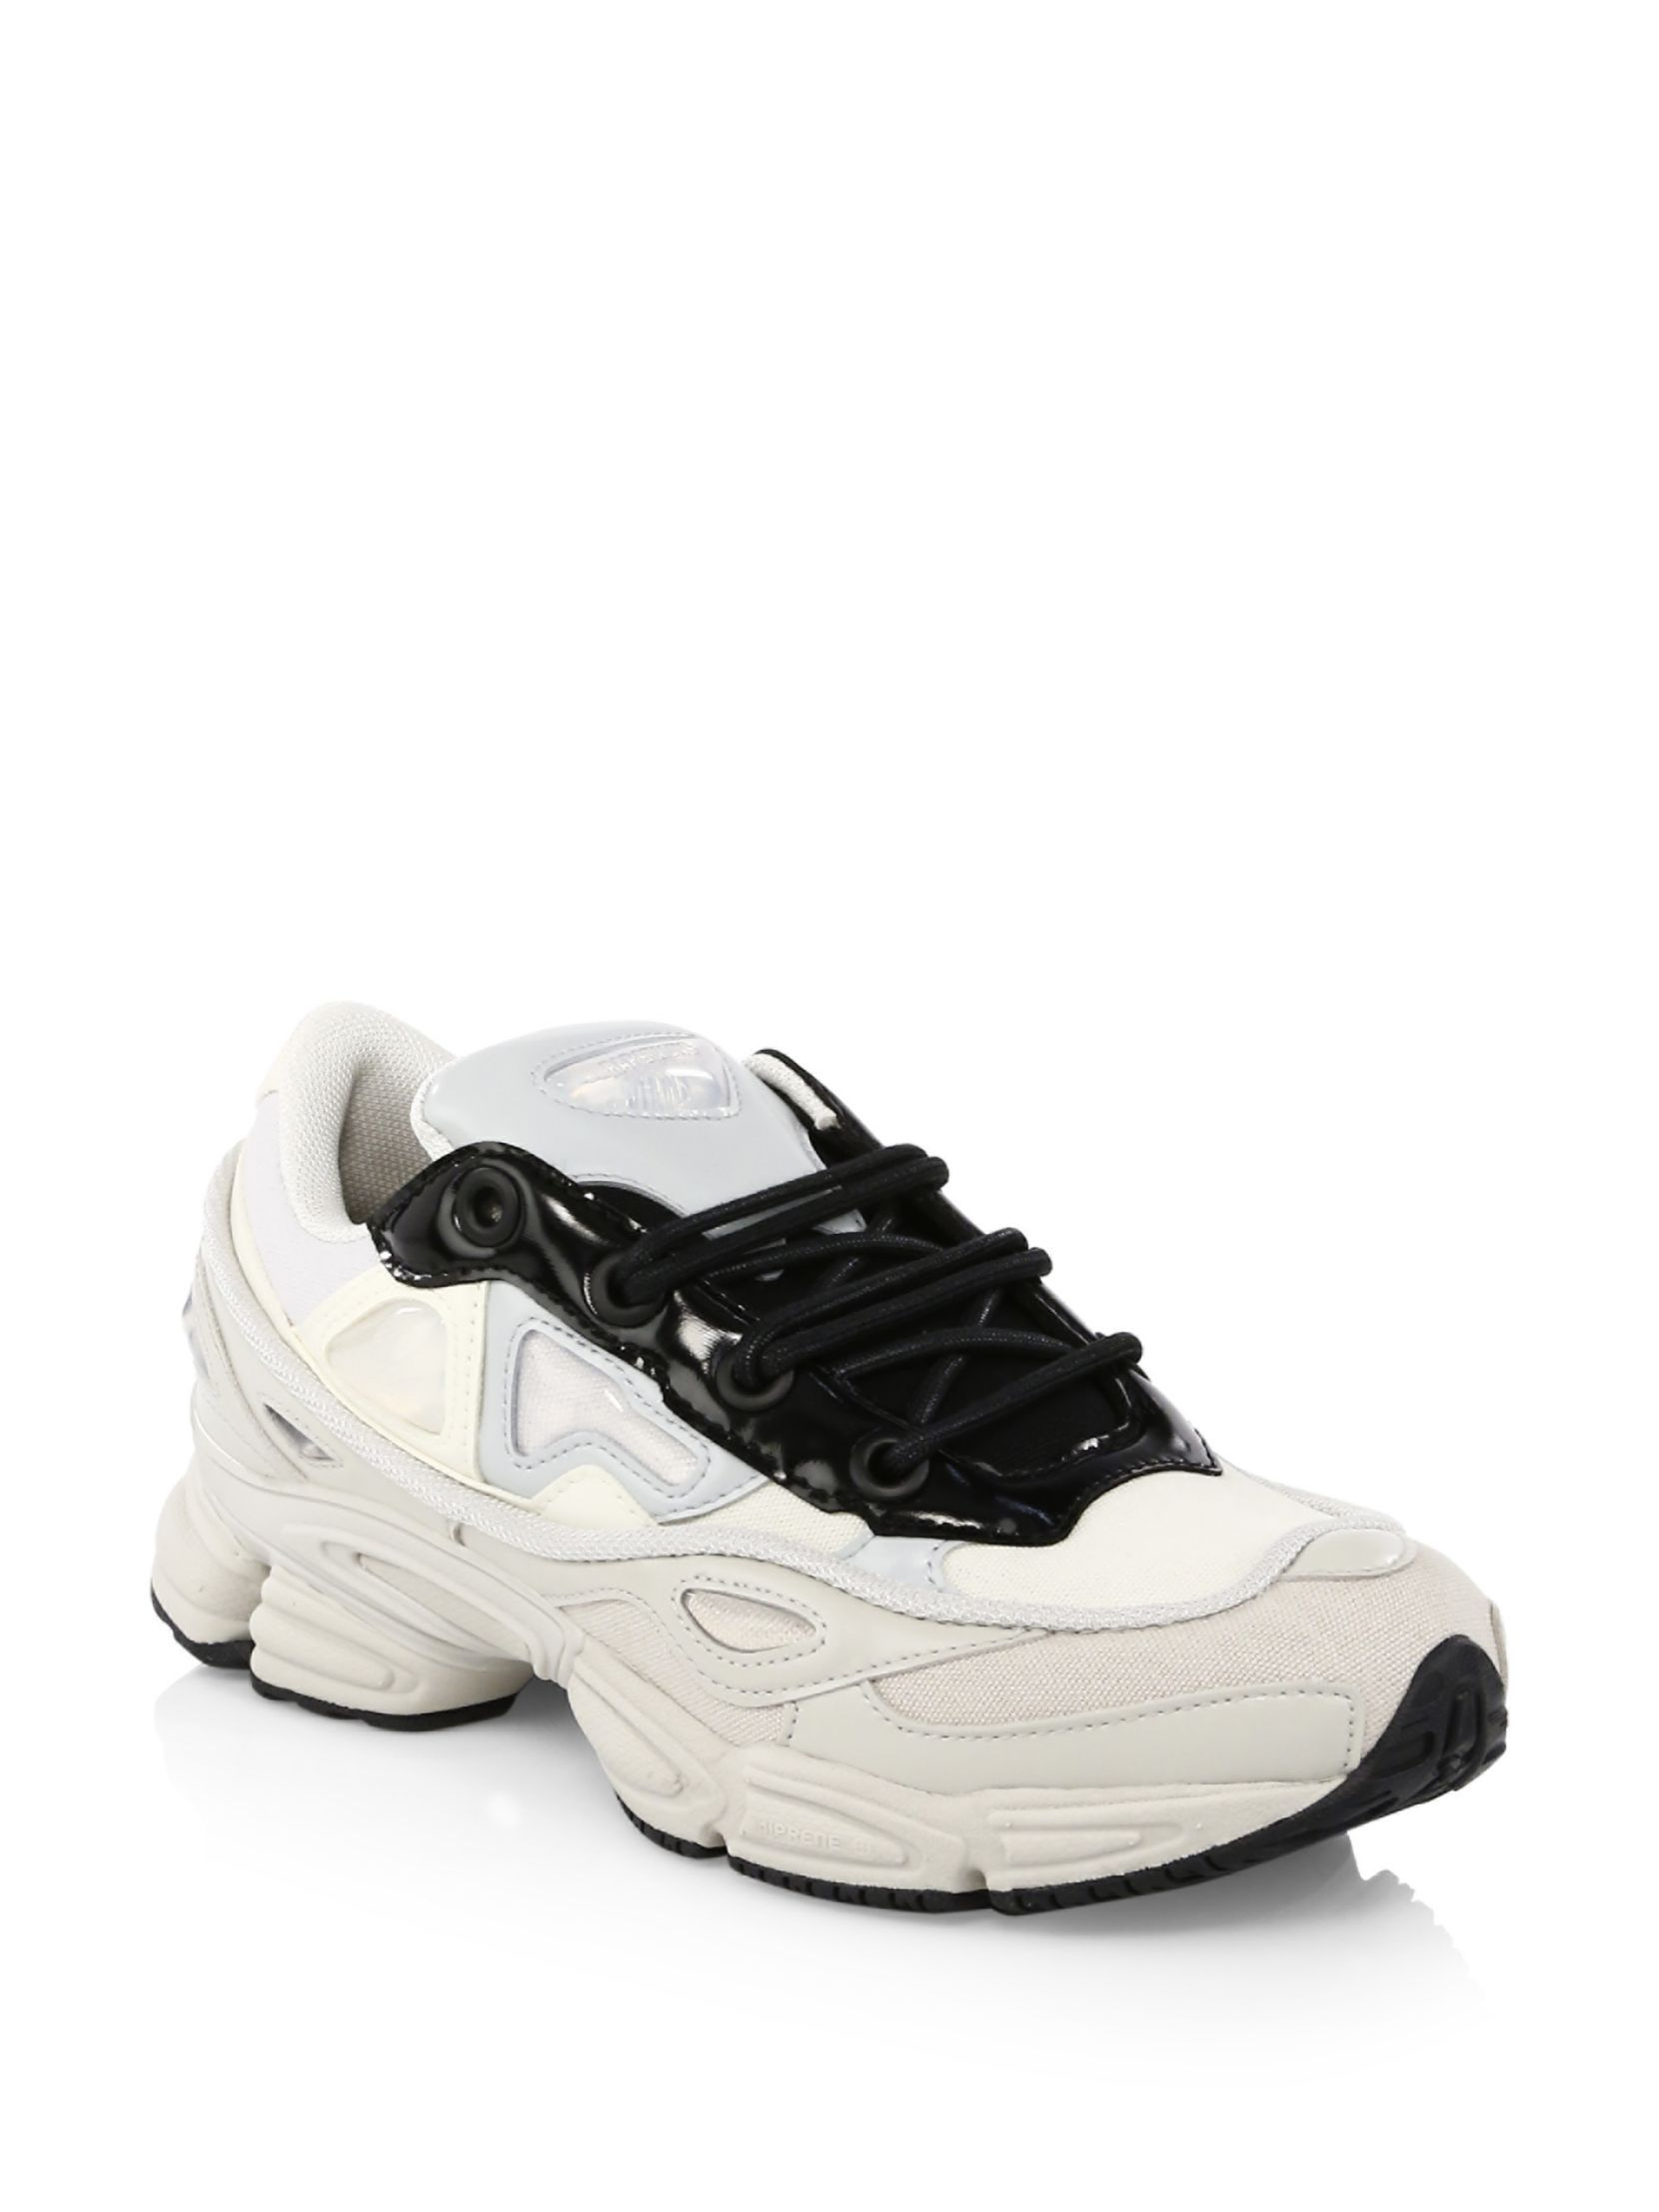 new styles 9fe67 7f4fe Adidas By Raf Simons Ozweego III Sneakers | Shoes | Sneakers ...